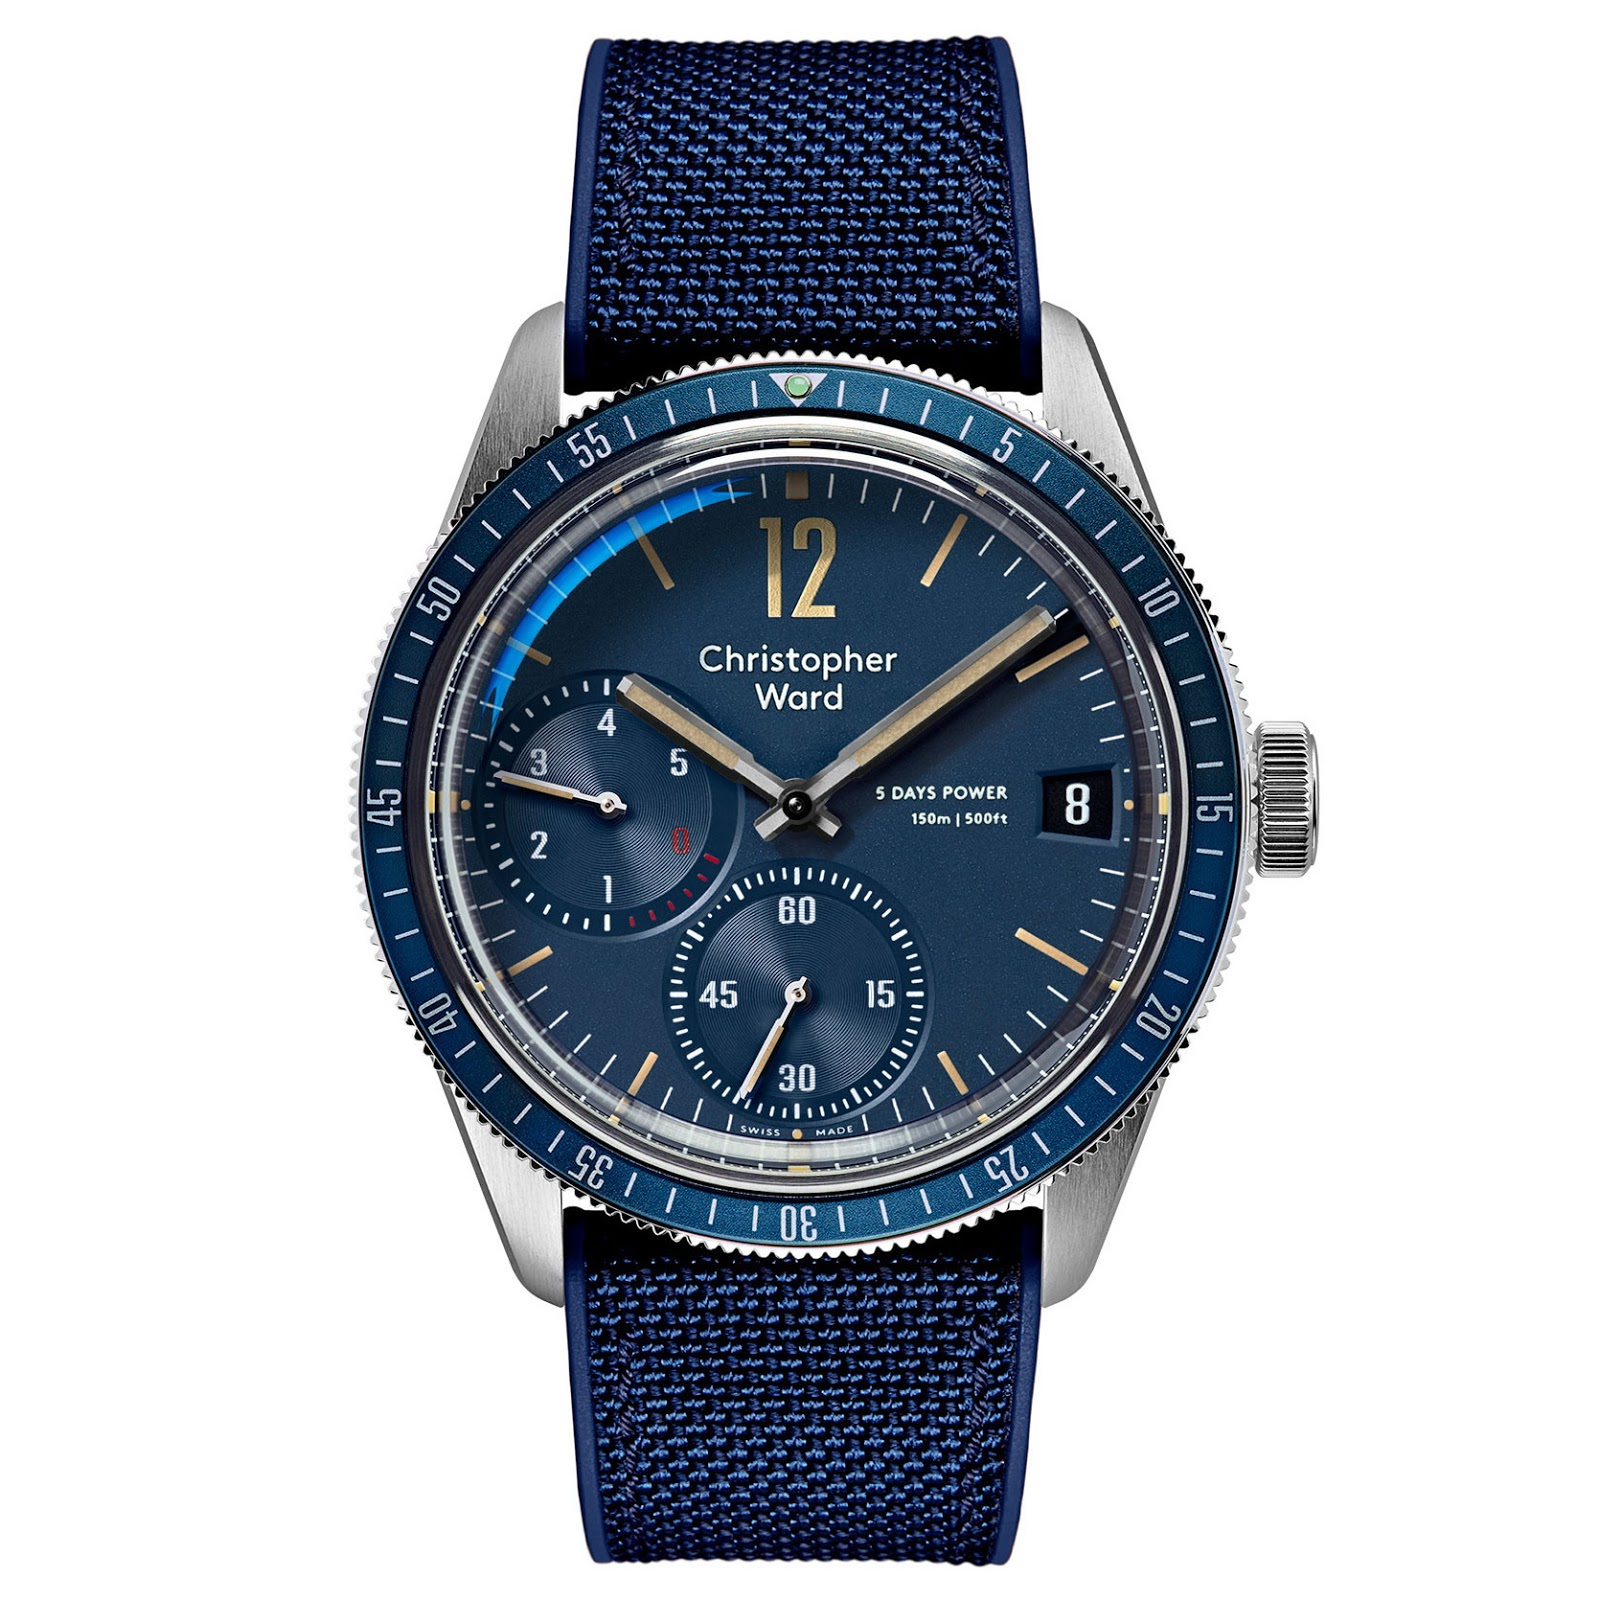 Christopher Ward's new C65 Trident Diver SH21 L.E. CHRISTOPHER%2BWARD%2BC65%2BTrident%2BDiver%2BSH21%2BLIMITED%2BEDITION%2B03